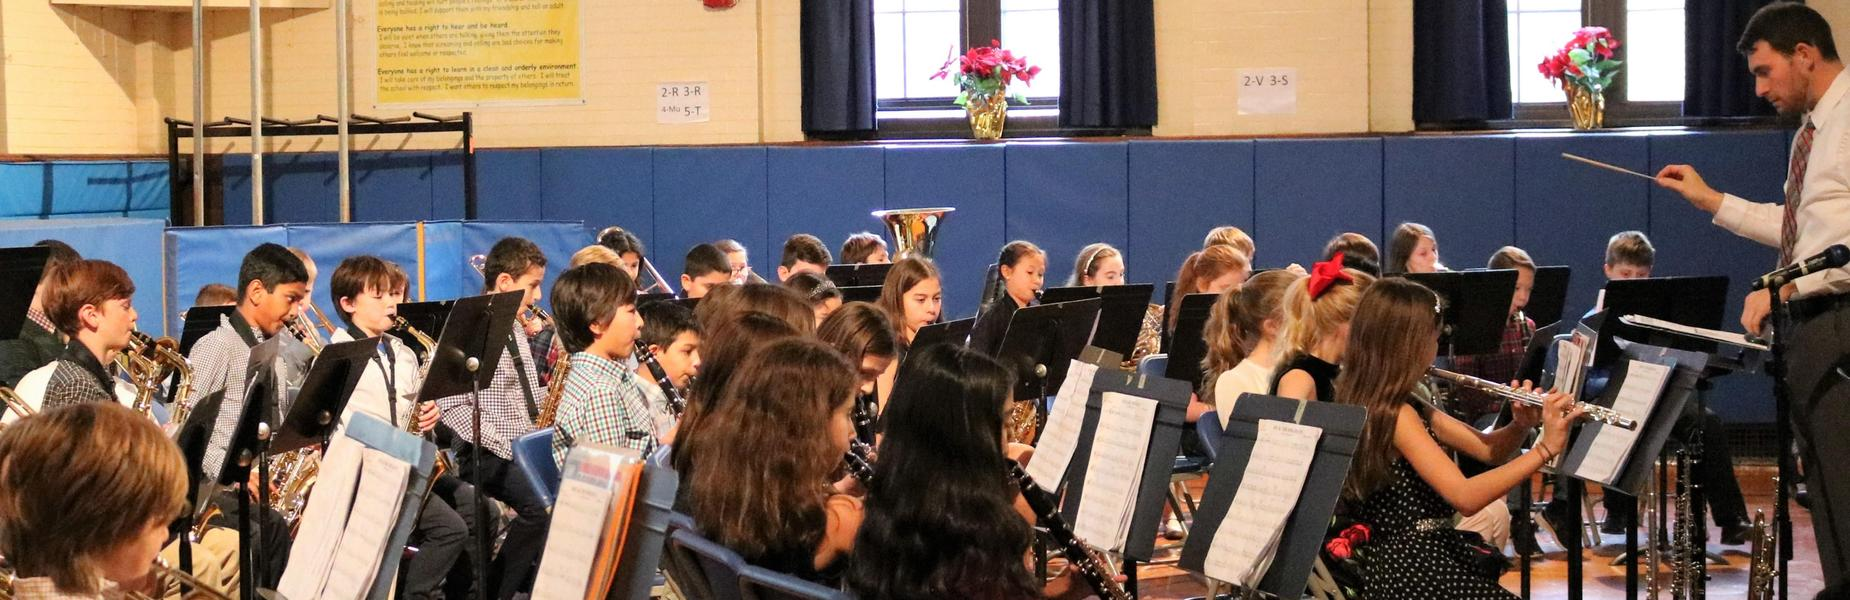 Franklin School band and chorus perform a holiday concert in December 2018.